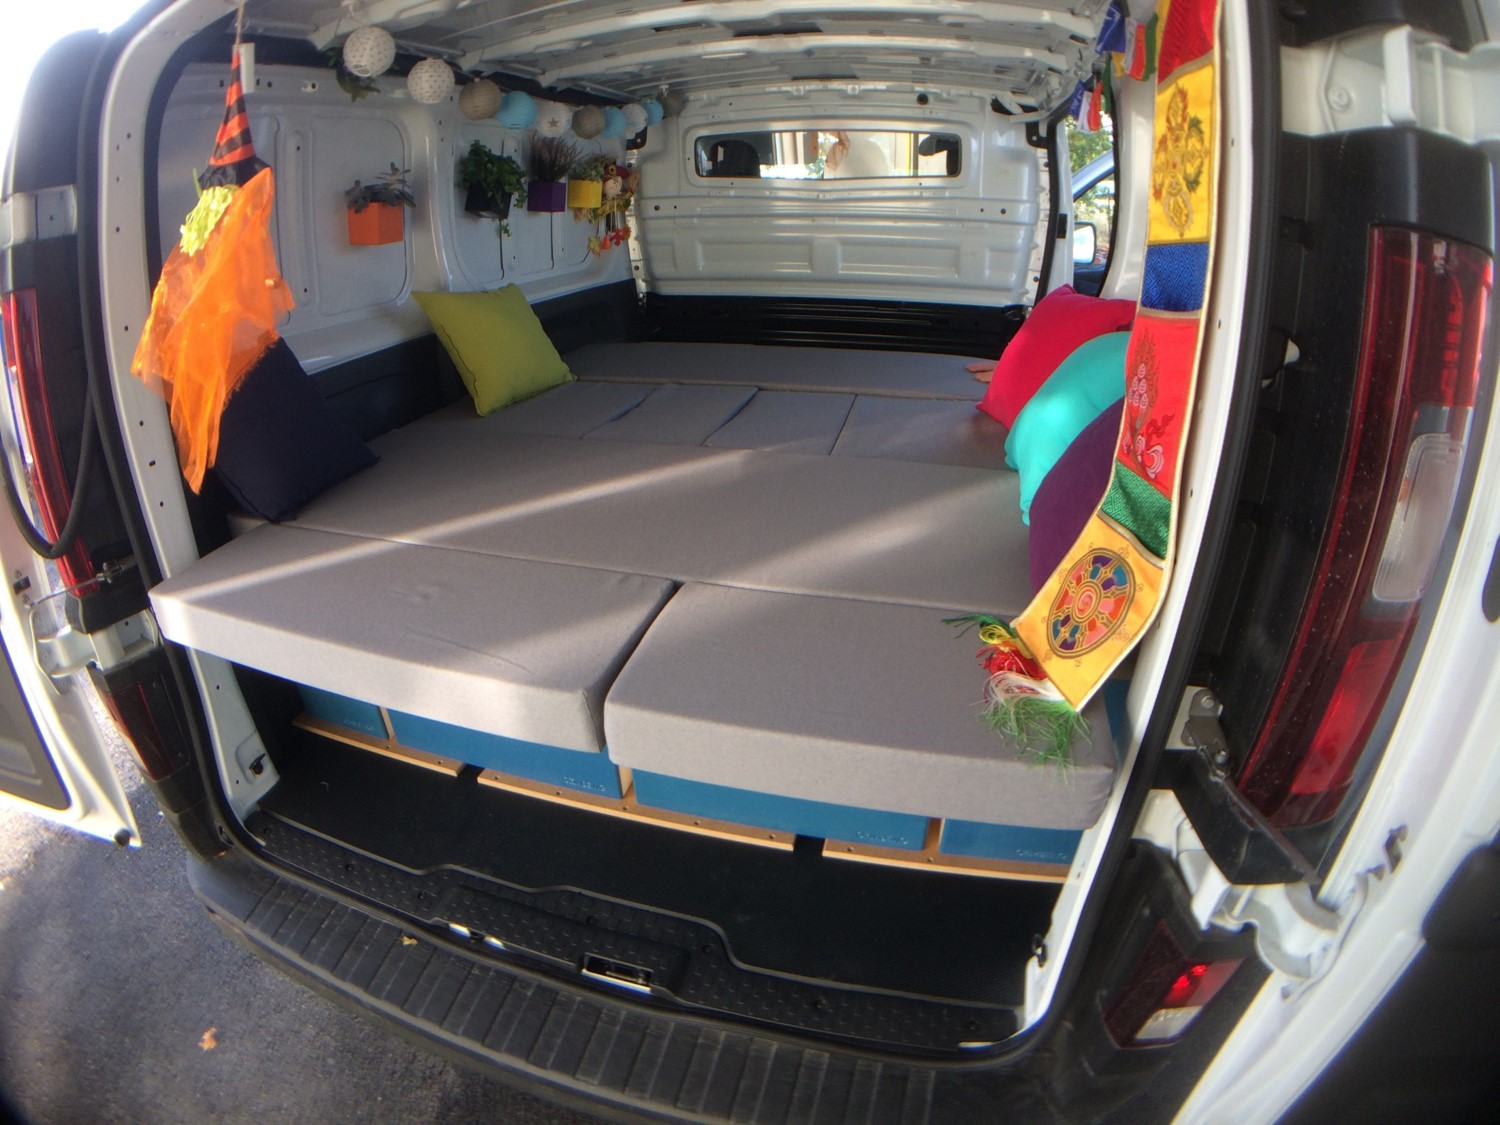 Nissan NV300 transformé en camping-car